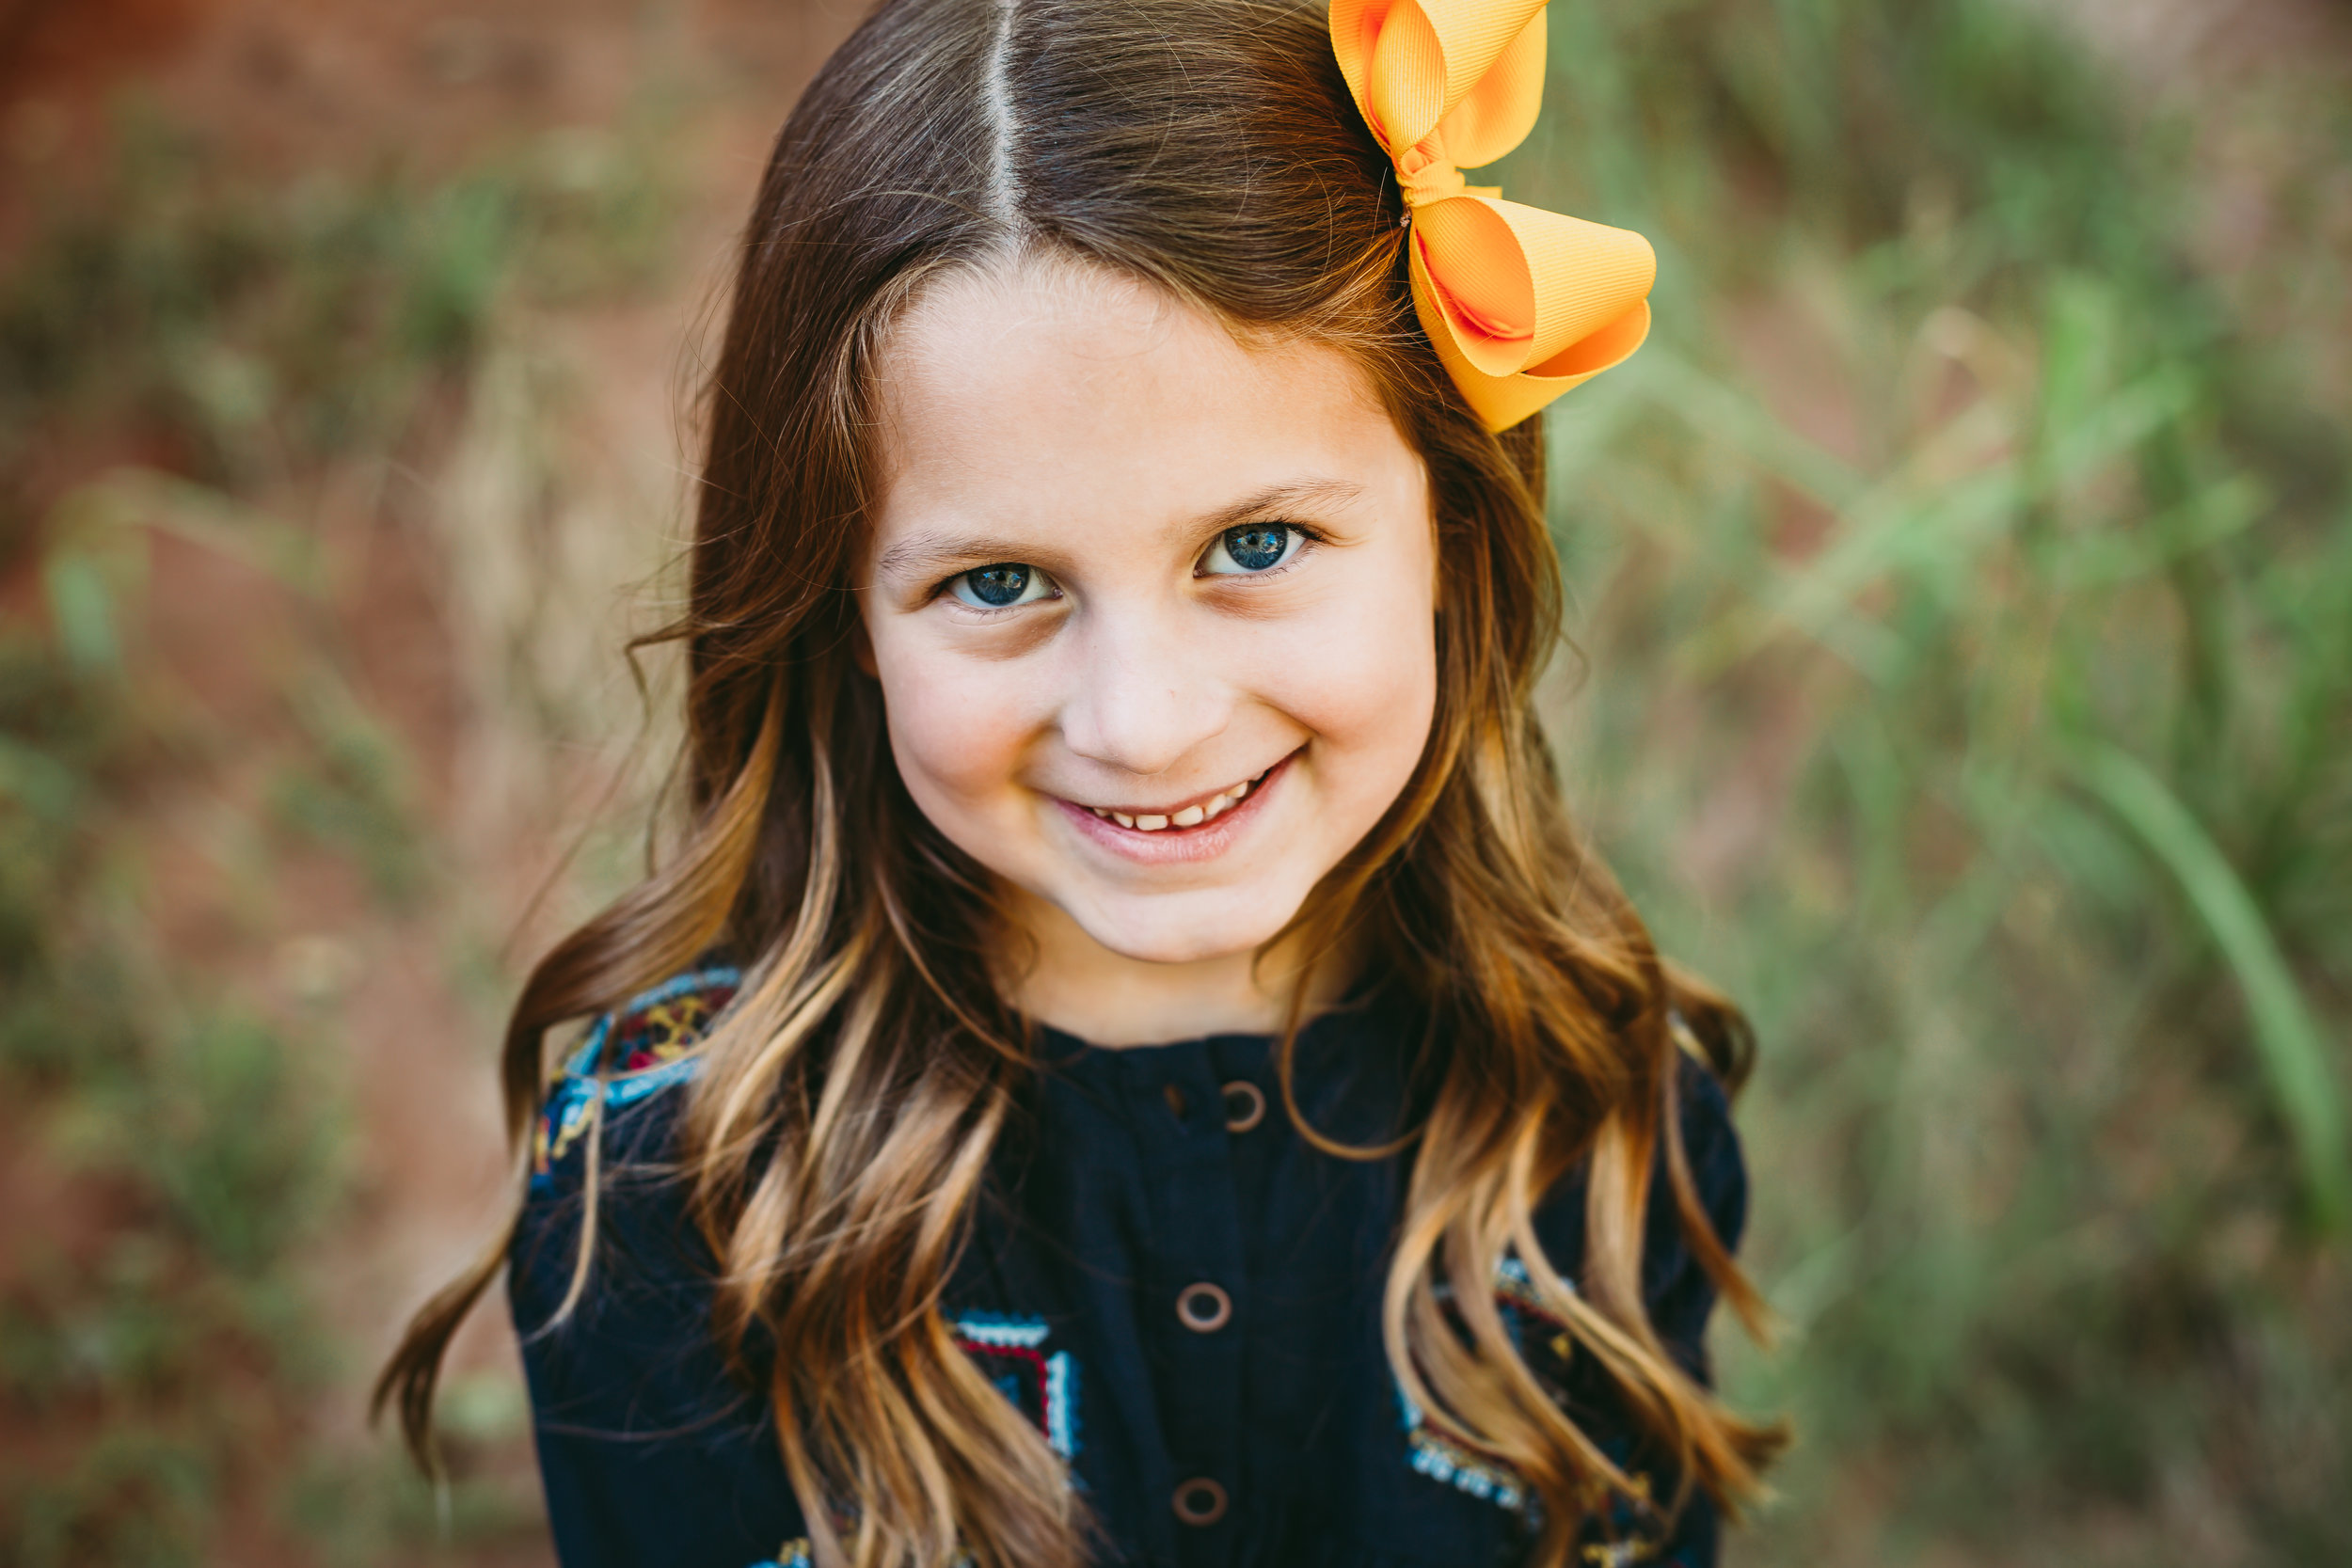 Solo photo of big sister with a large yellow bow in ther hair smiling at the camera #tealawardphotography #texasfamilyphotographer #amarillophotographer #amarillofamilyphotographer #lifestylephotography #emotionalphotography #familyphotosoot #family #lovingsiblings #purejoy #familyphotos #familyphotographer #greatoutdoors